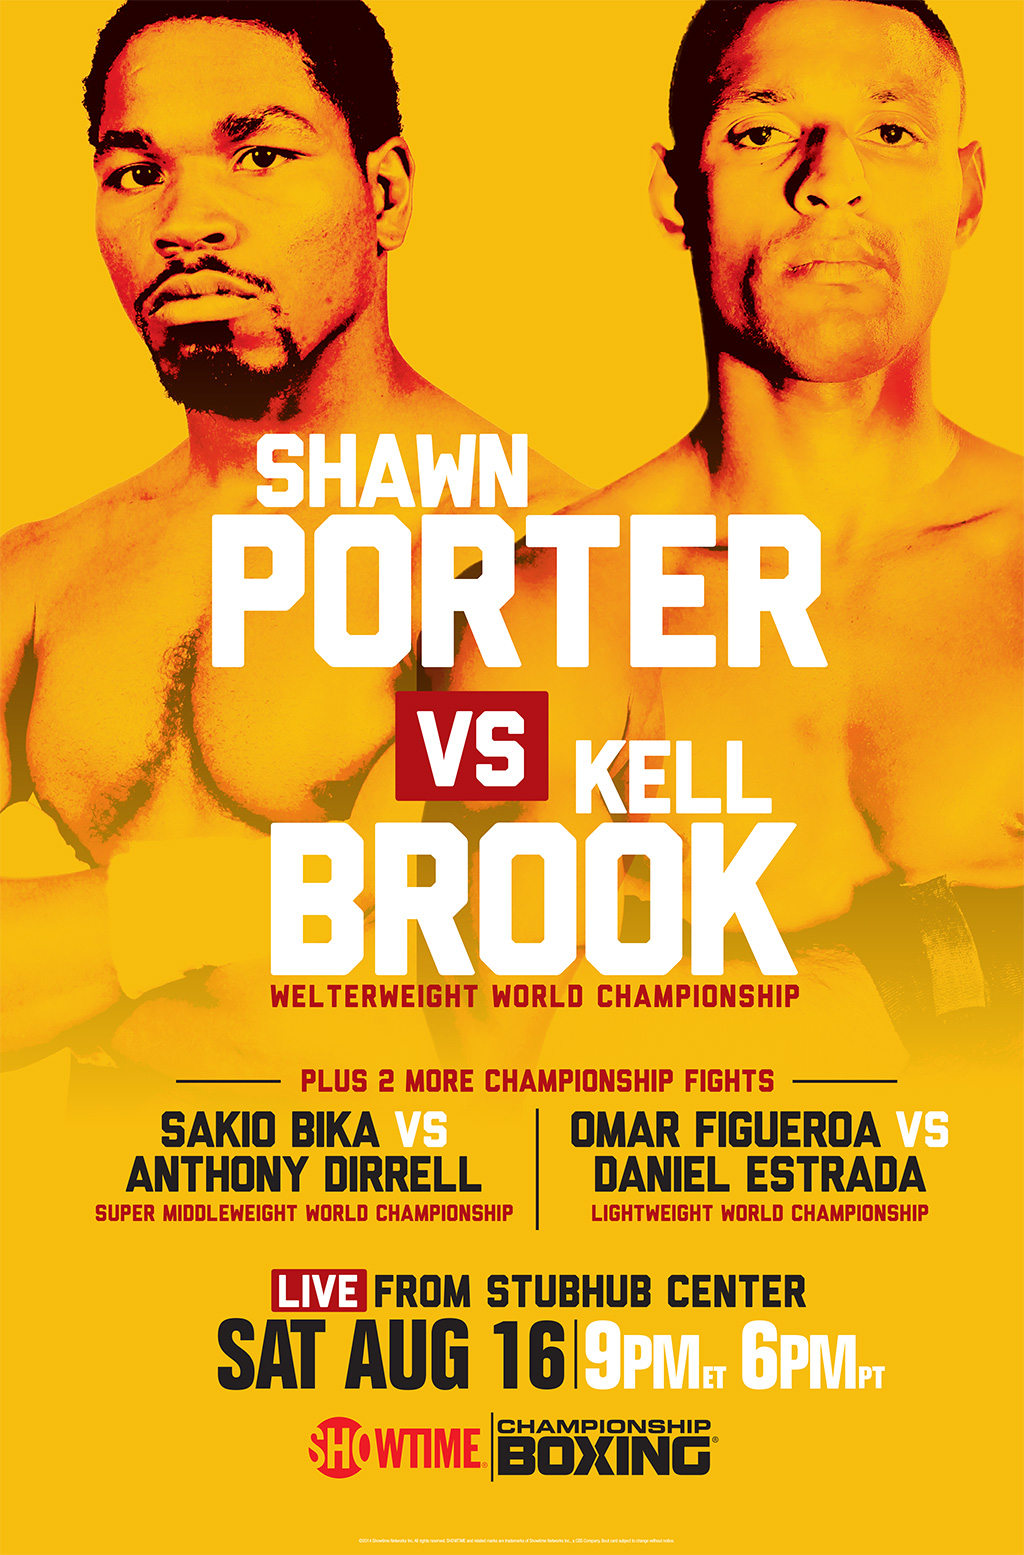 Shawn Porter vs. Kell Brook